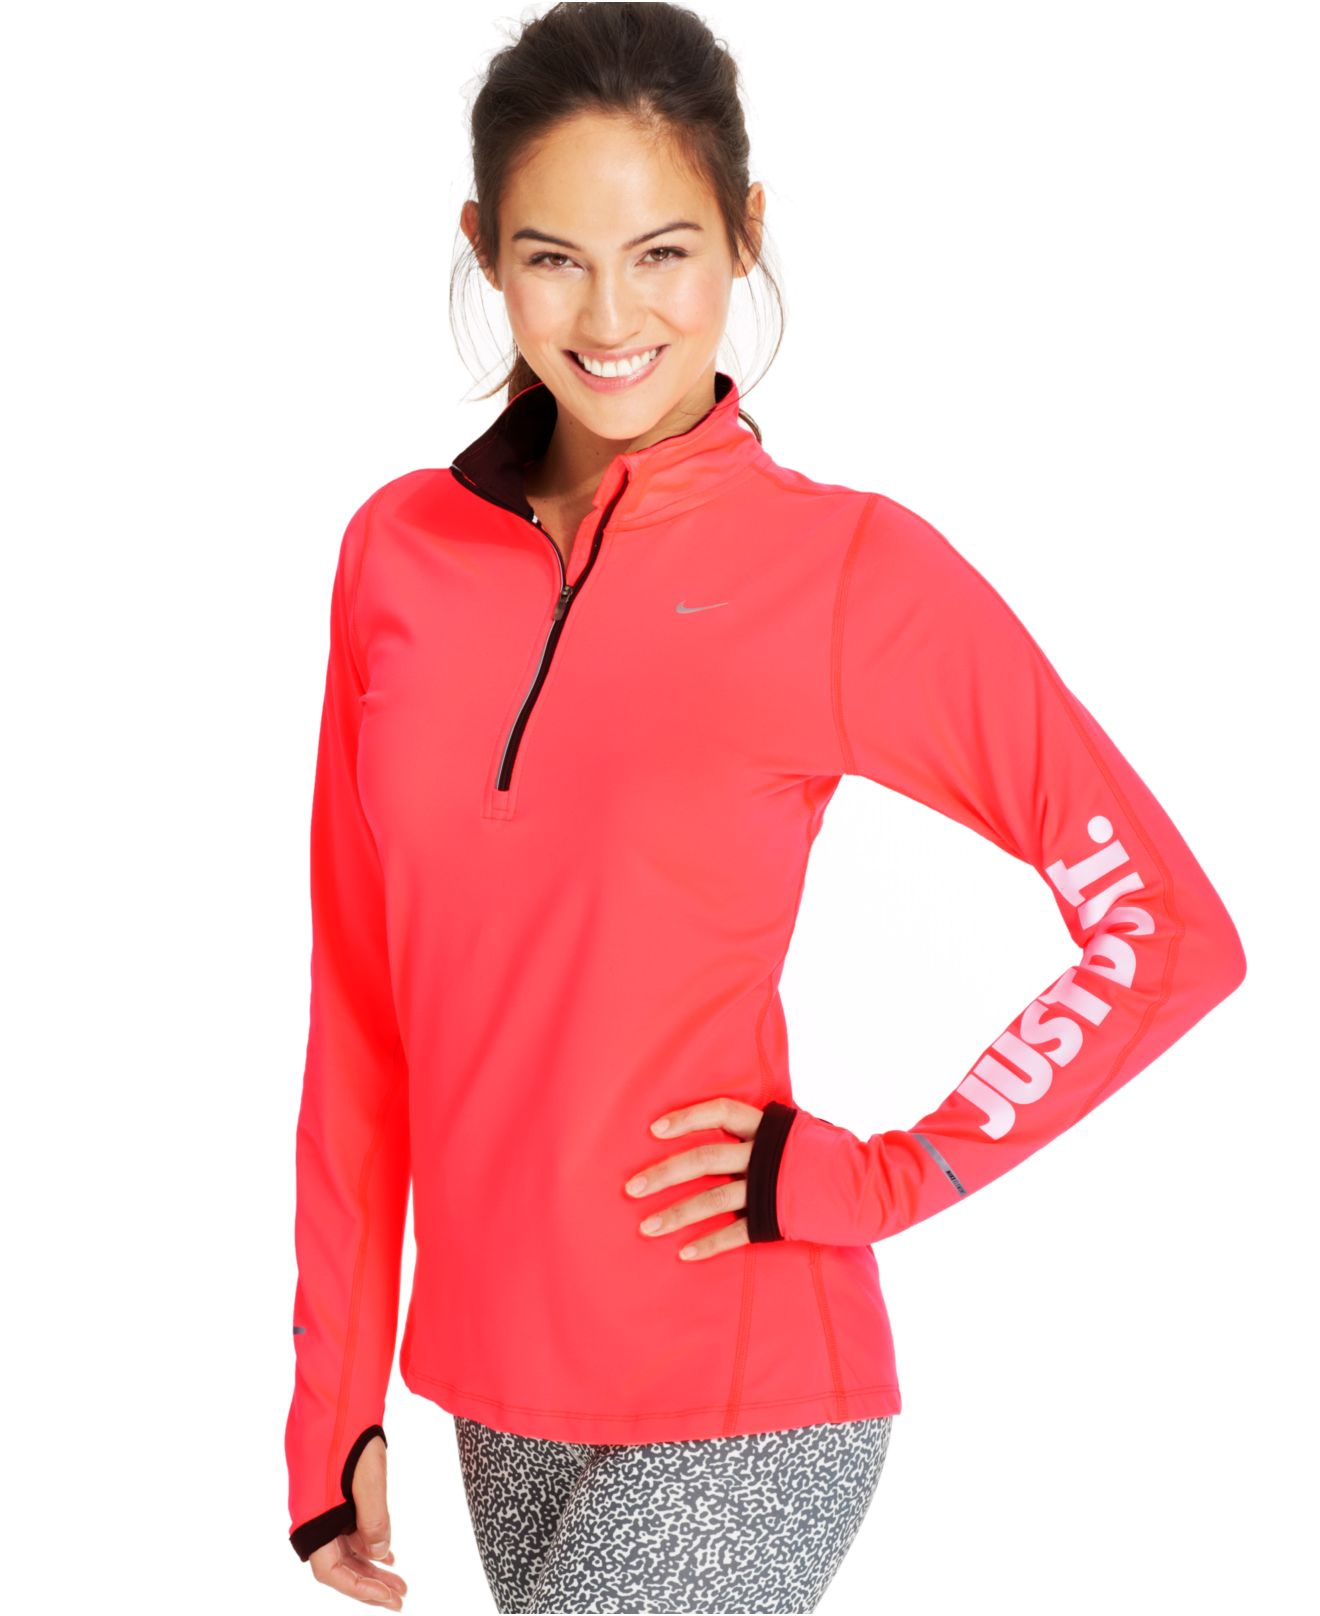 nike just do it element dri fit half zip pullover in red lyst. Black Bedroom Furniture Sets. Home Design Ideas